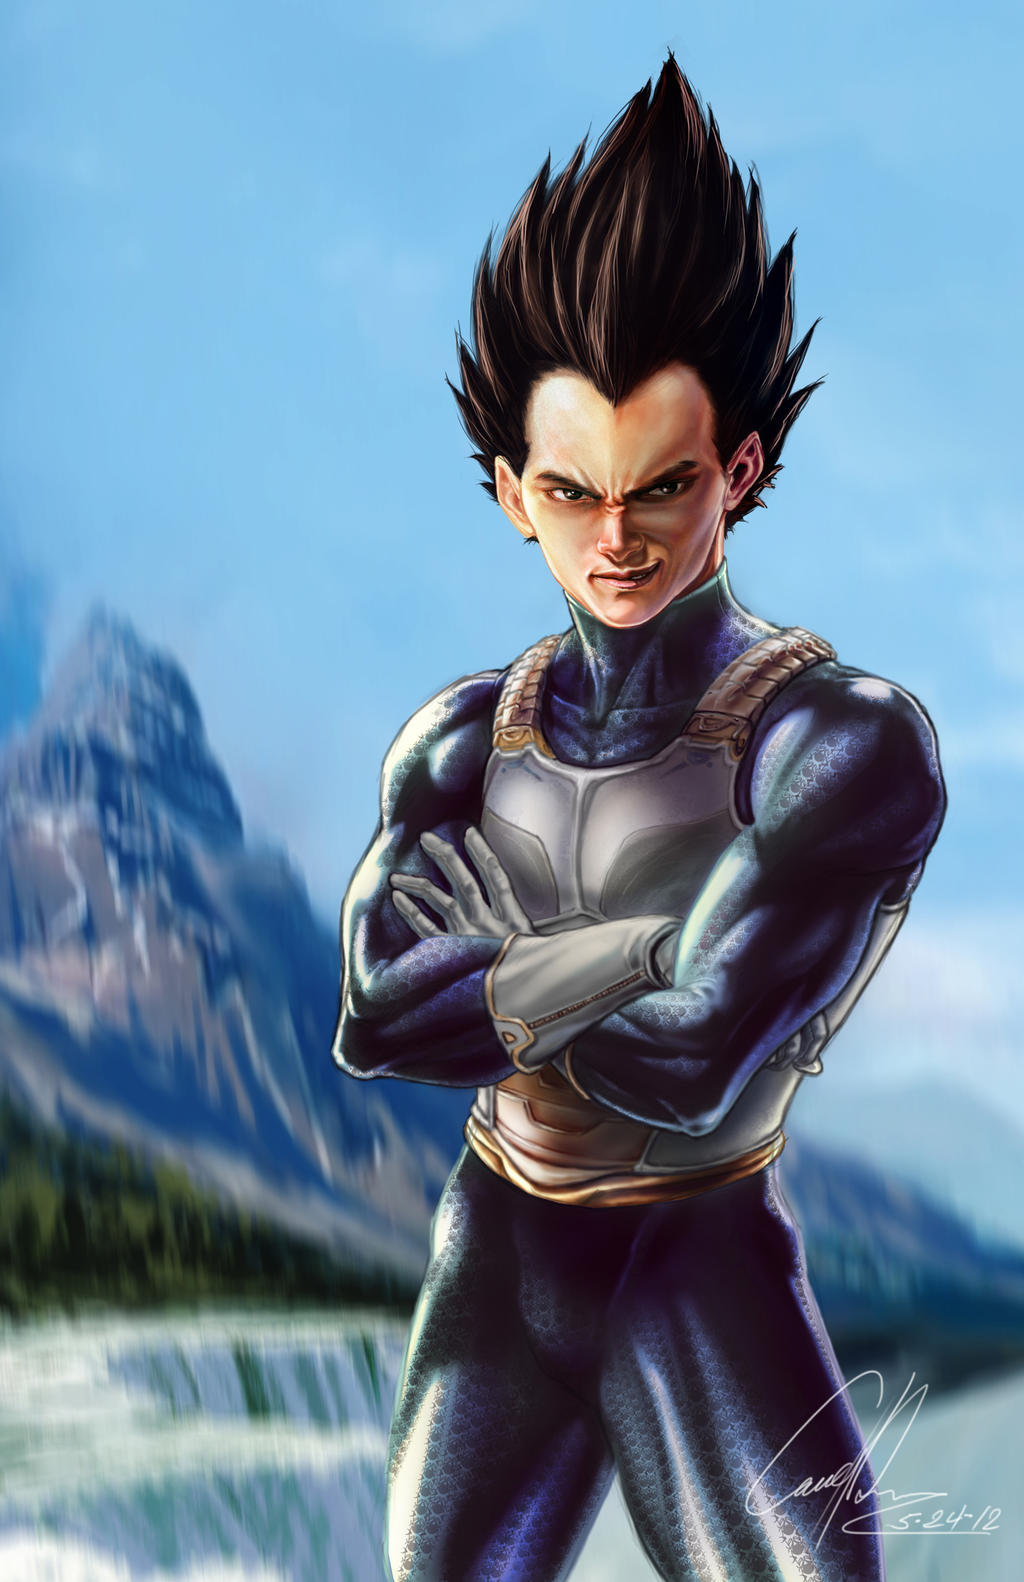 Vegeta by CangDu on DeviantArt - Hairstyle Generator